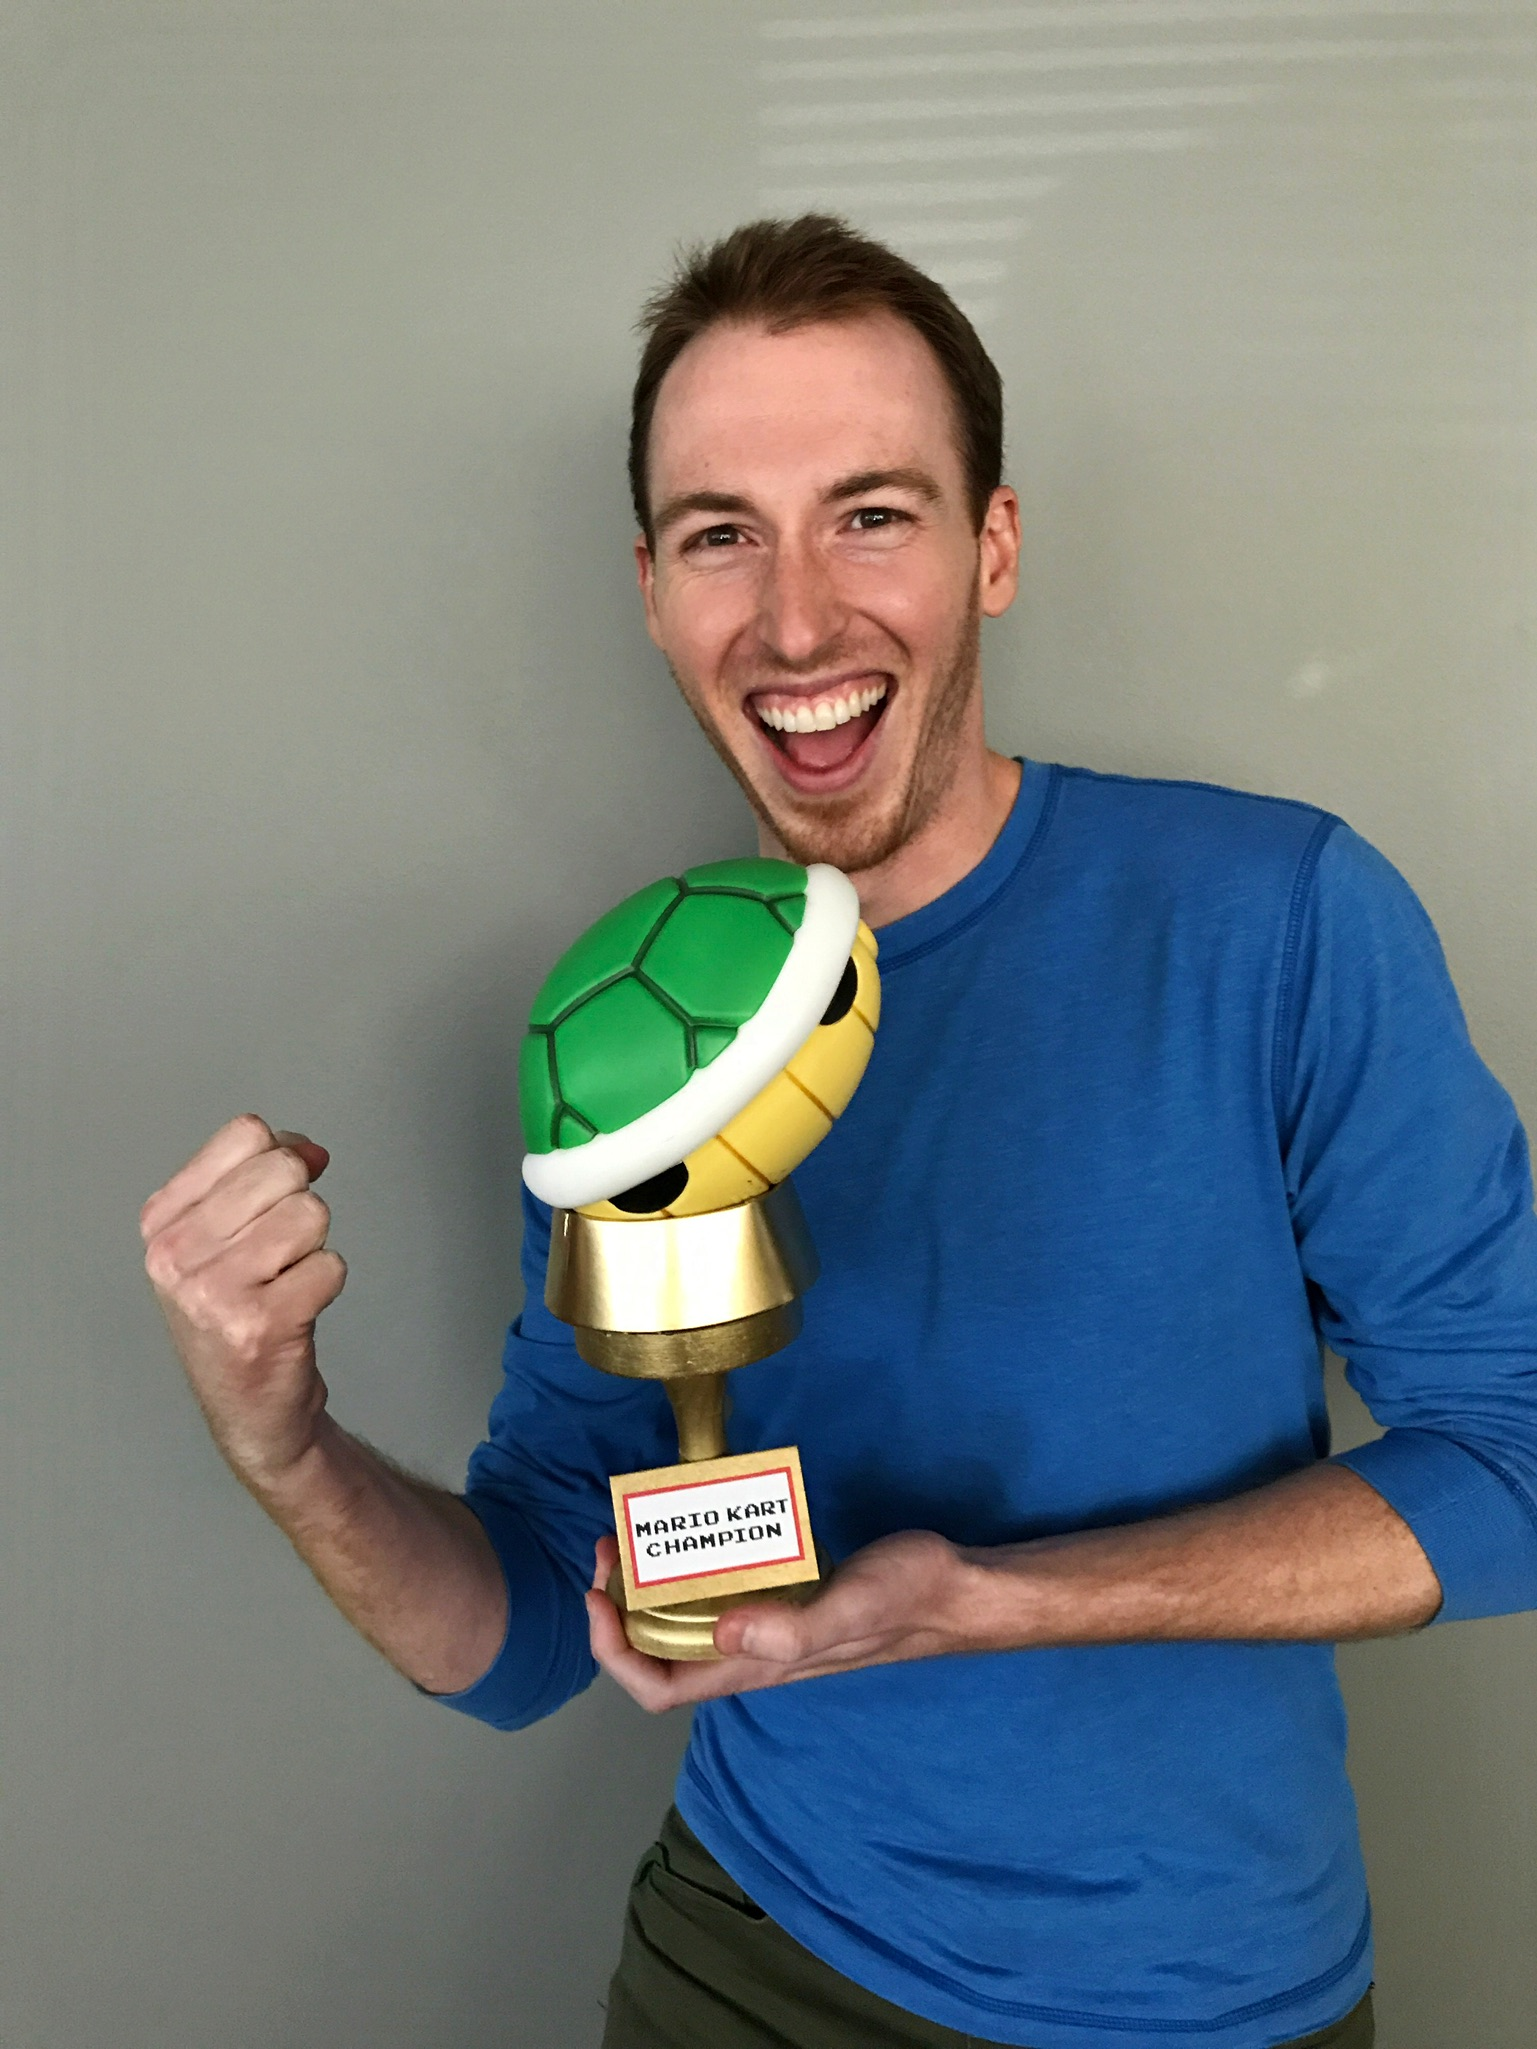 Michael P with Mario Kart Tournament trophy